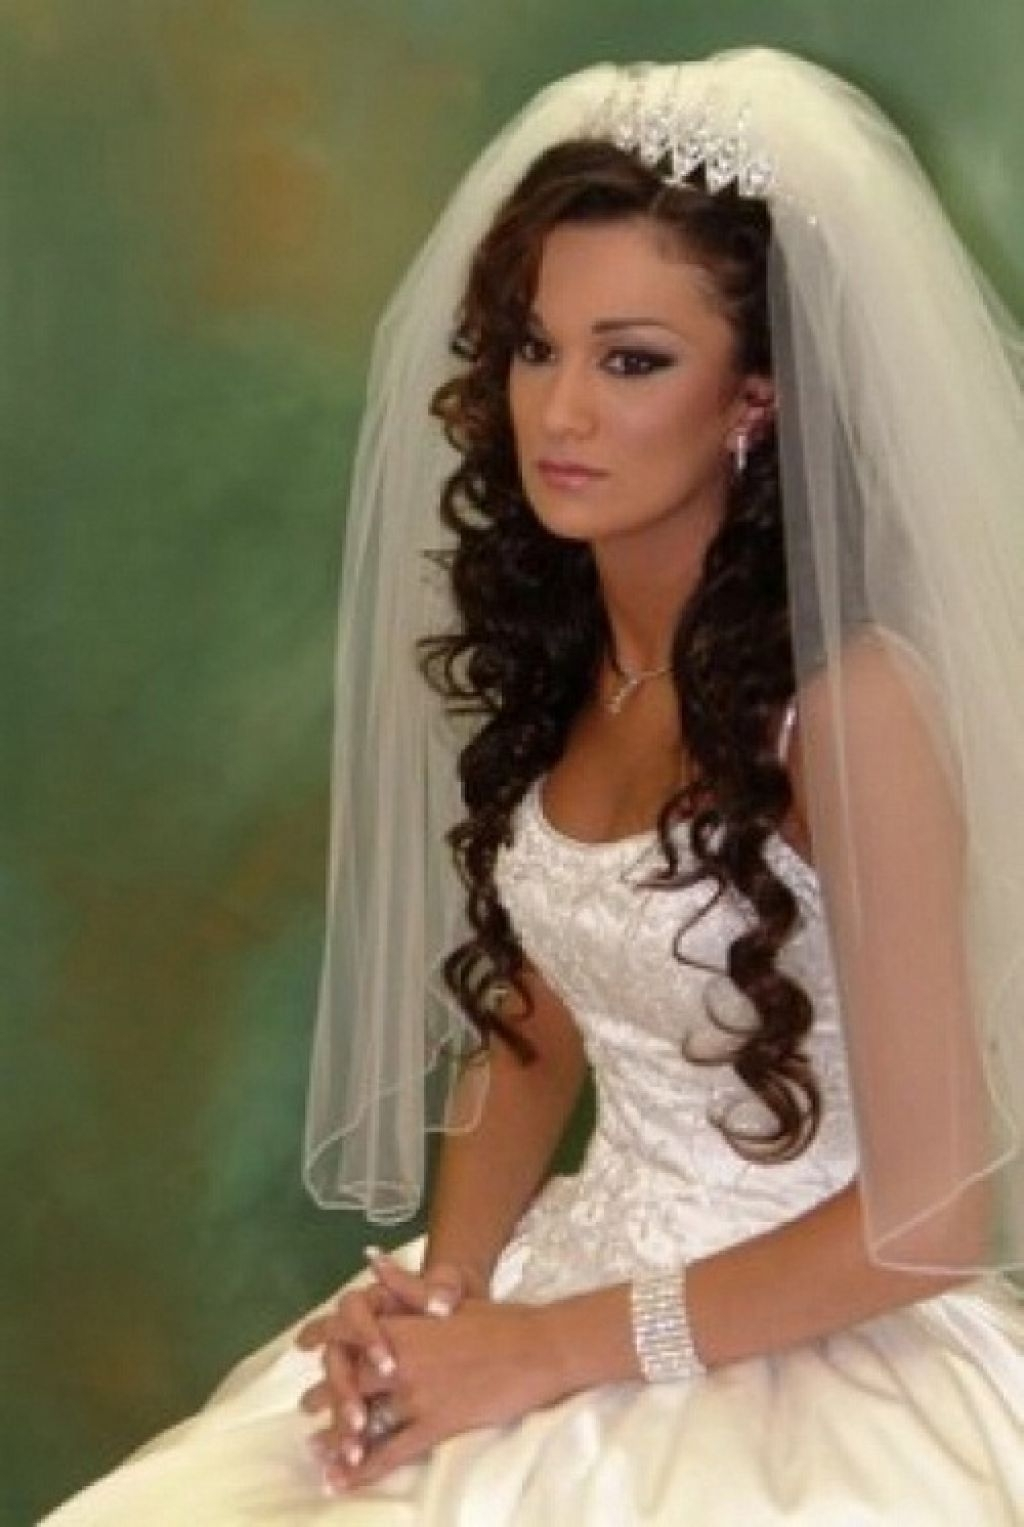 Wedding Hairstyles For Short Hair With Veil – Hairstyle For Women & Man With Regard To Fashionable Wedding Hairstyles For Long Hair Down With Tiara (View 12 of 15)